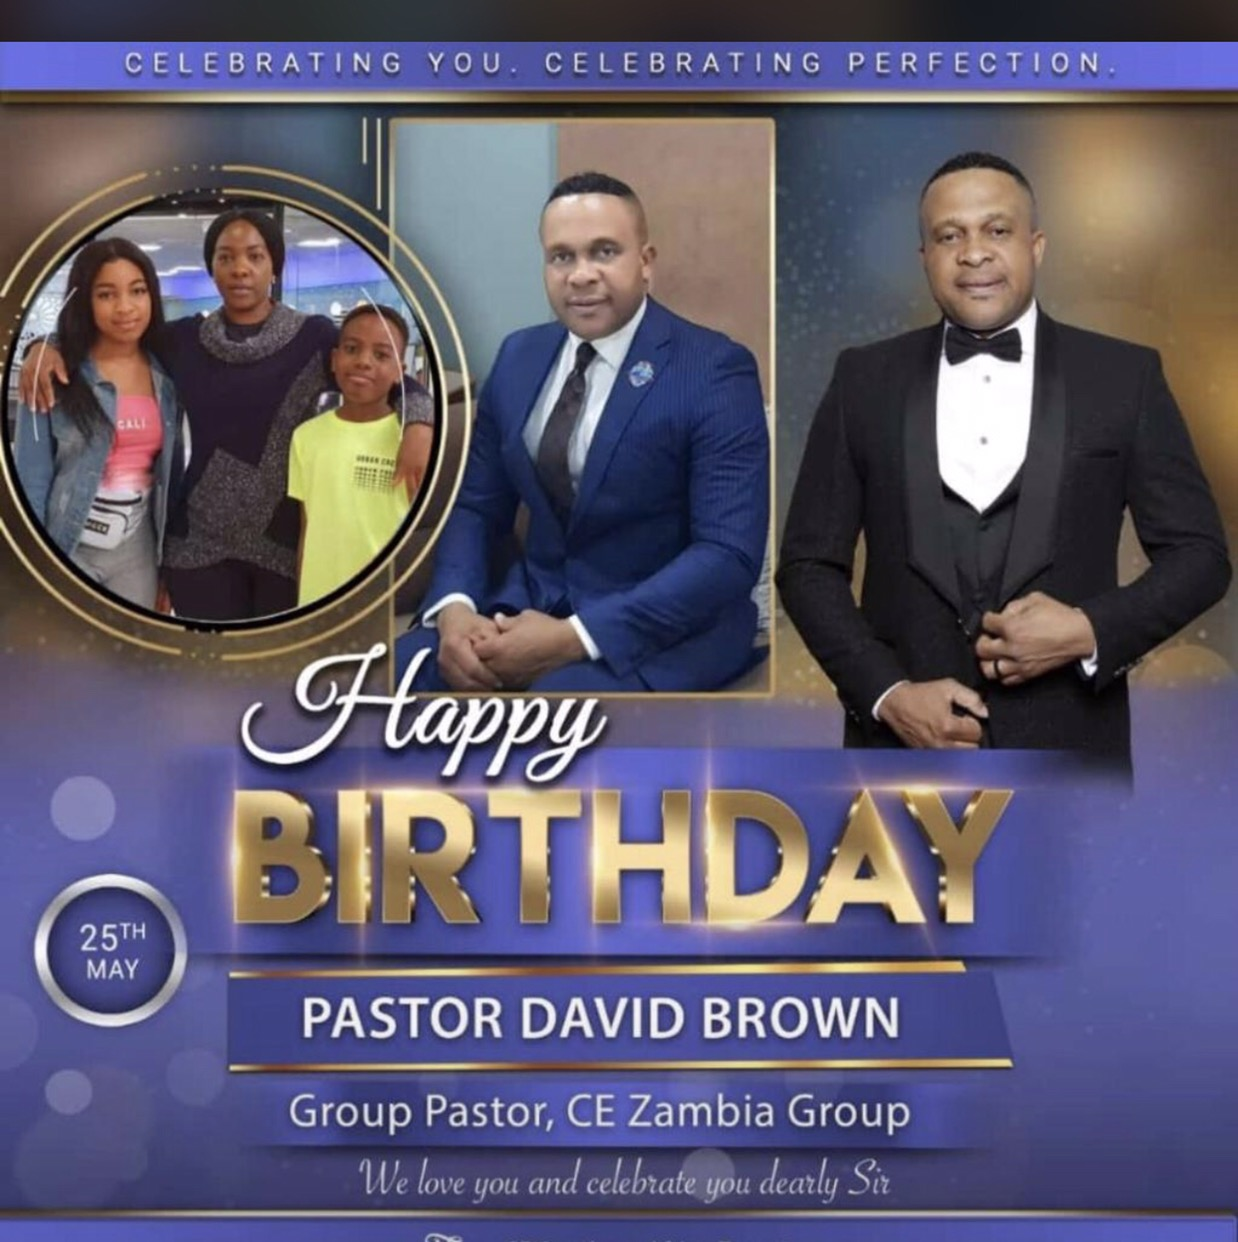 Happy Birthday Pastor David Brown